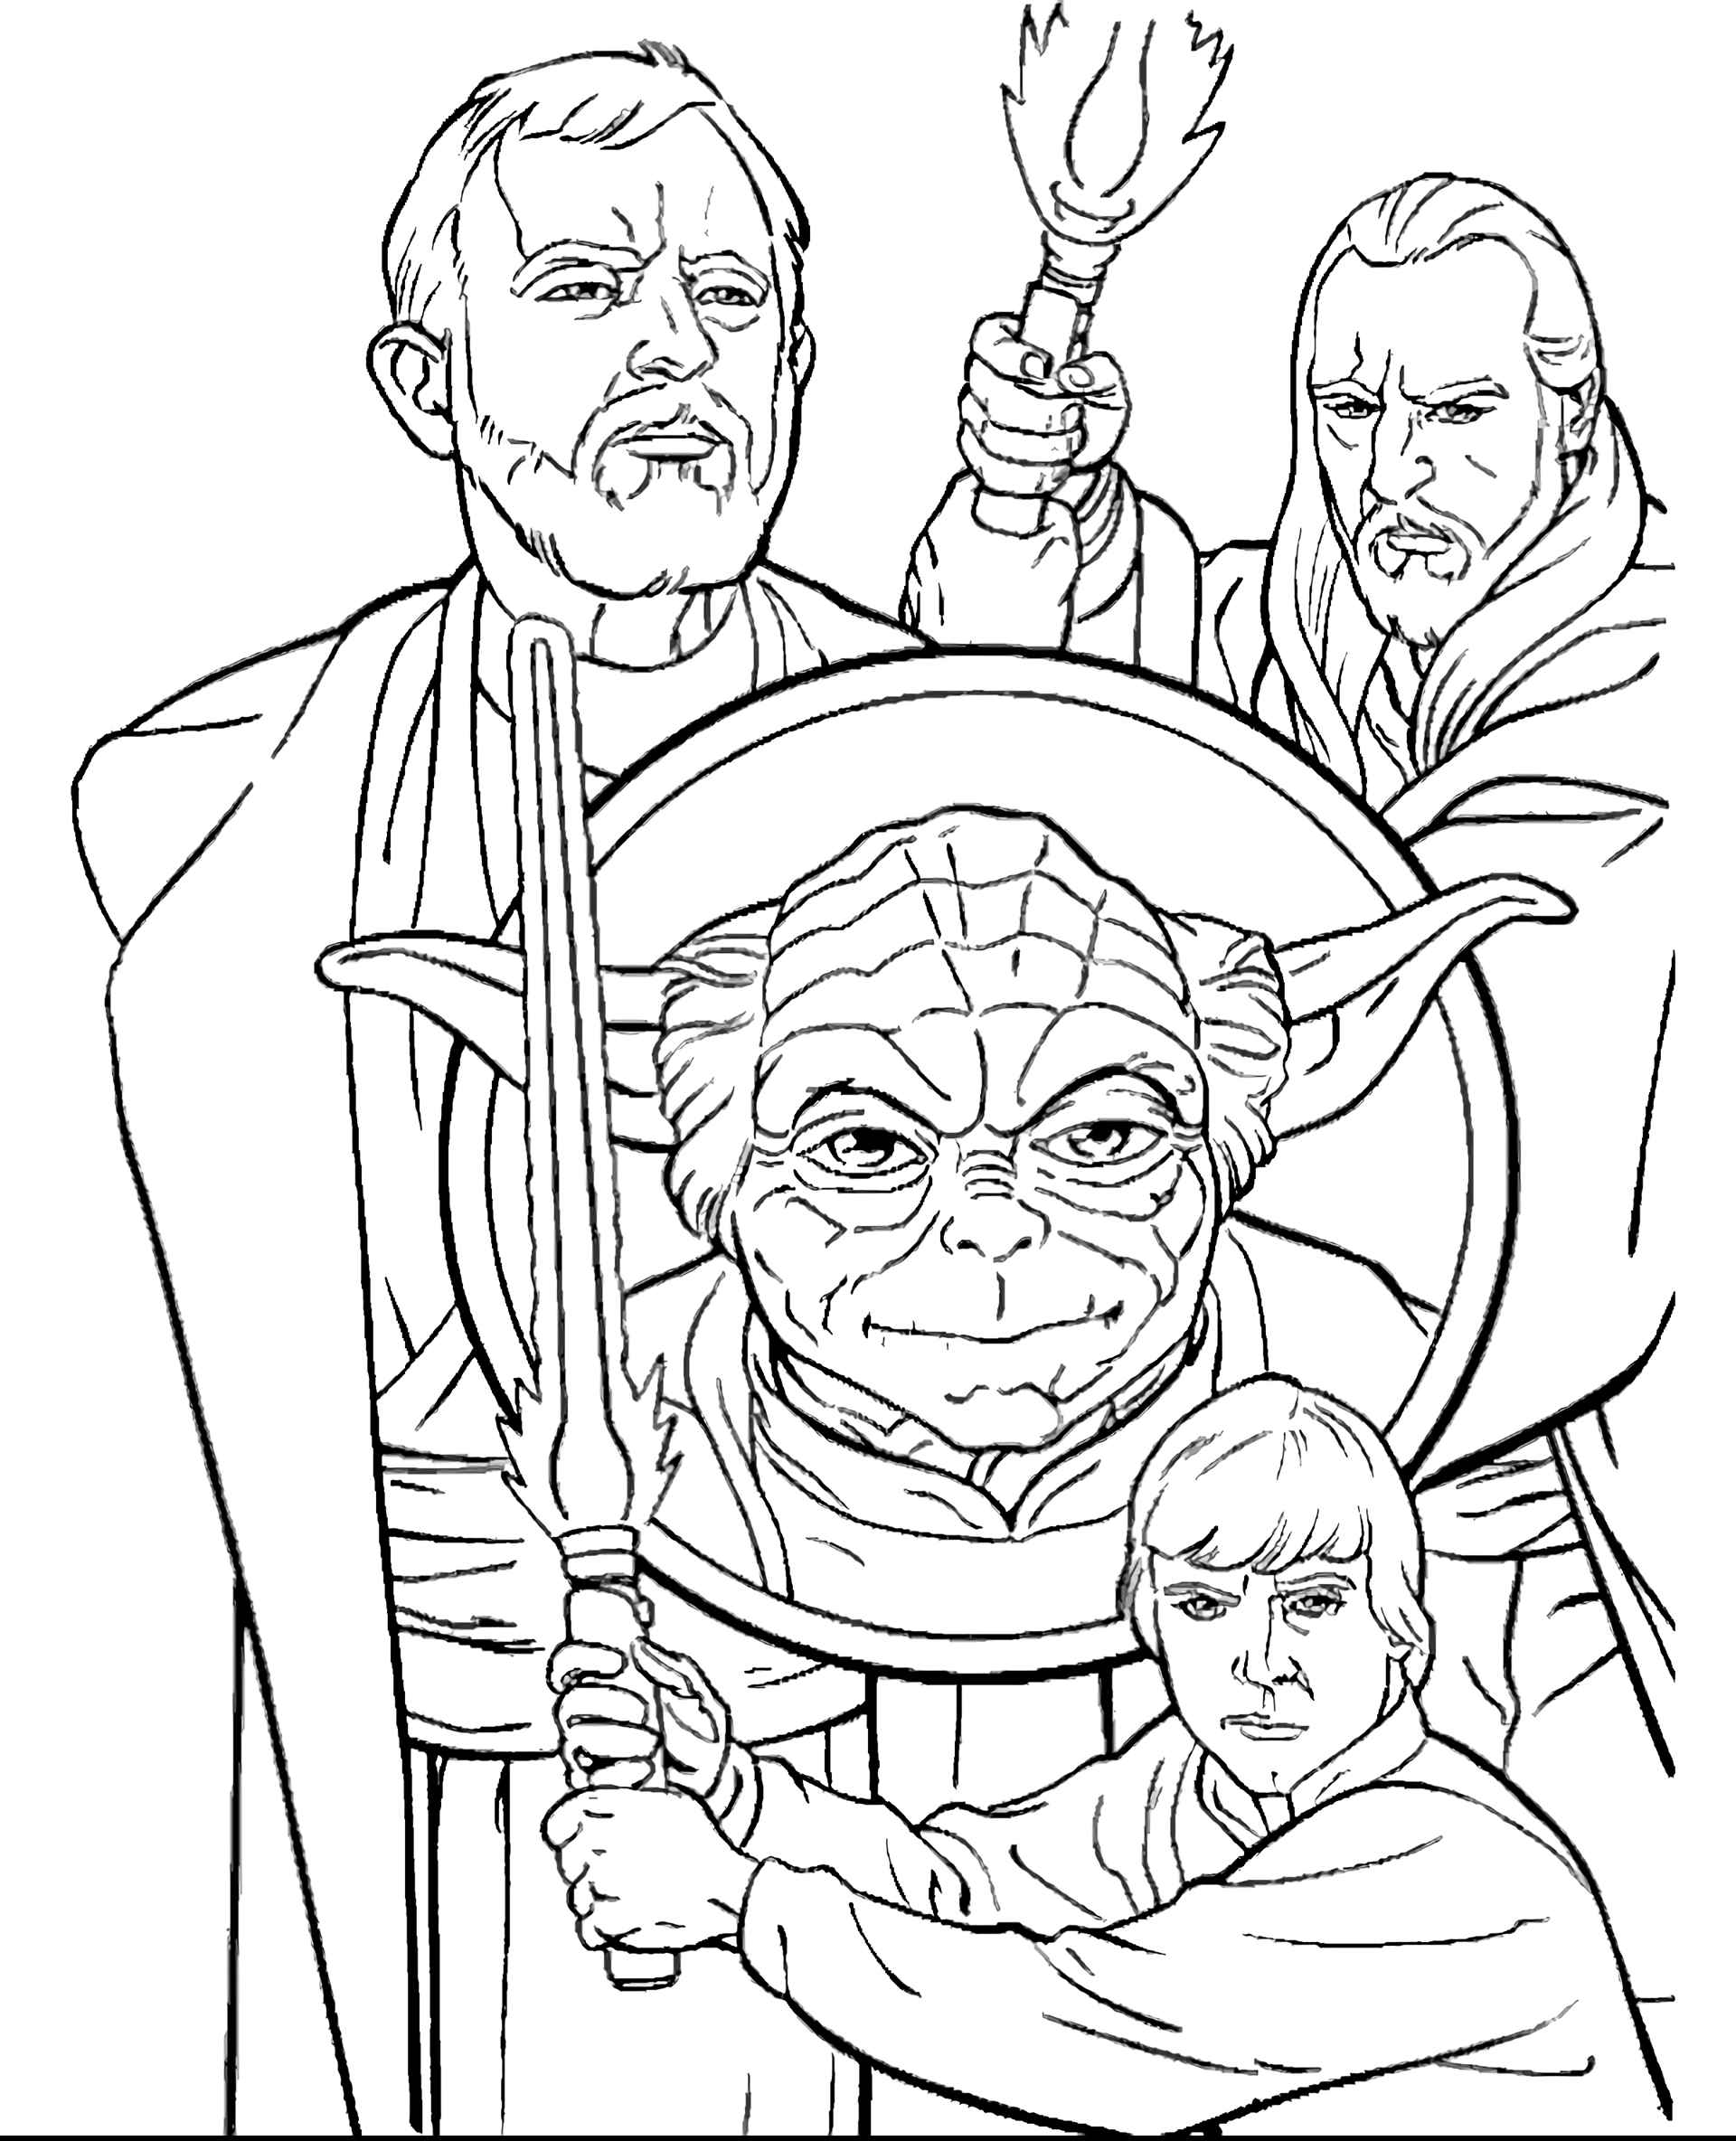 Master Yoda, Luke, Obi-Wan Kenobi And Owen Lars From Star Wars Coloring Page